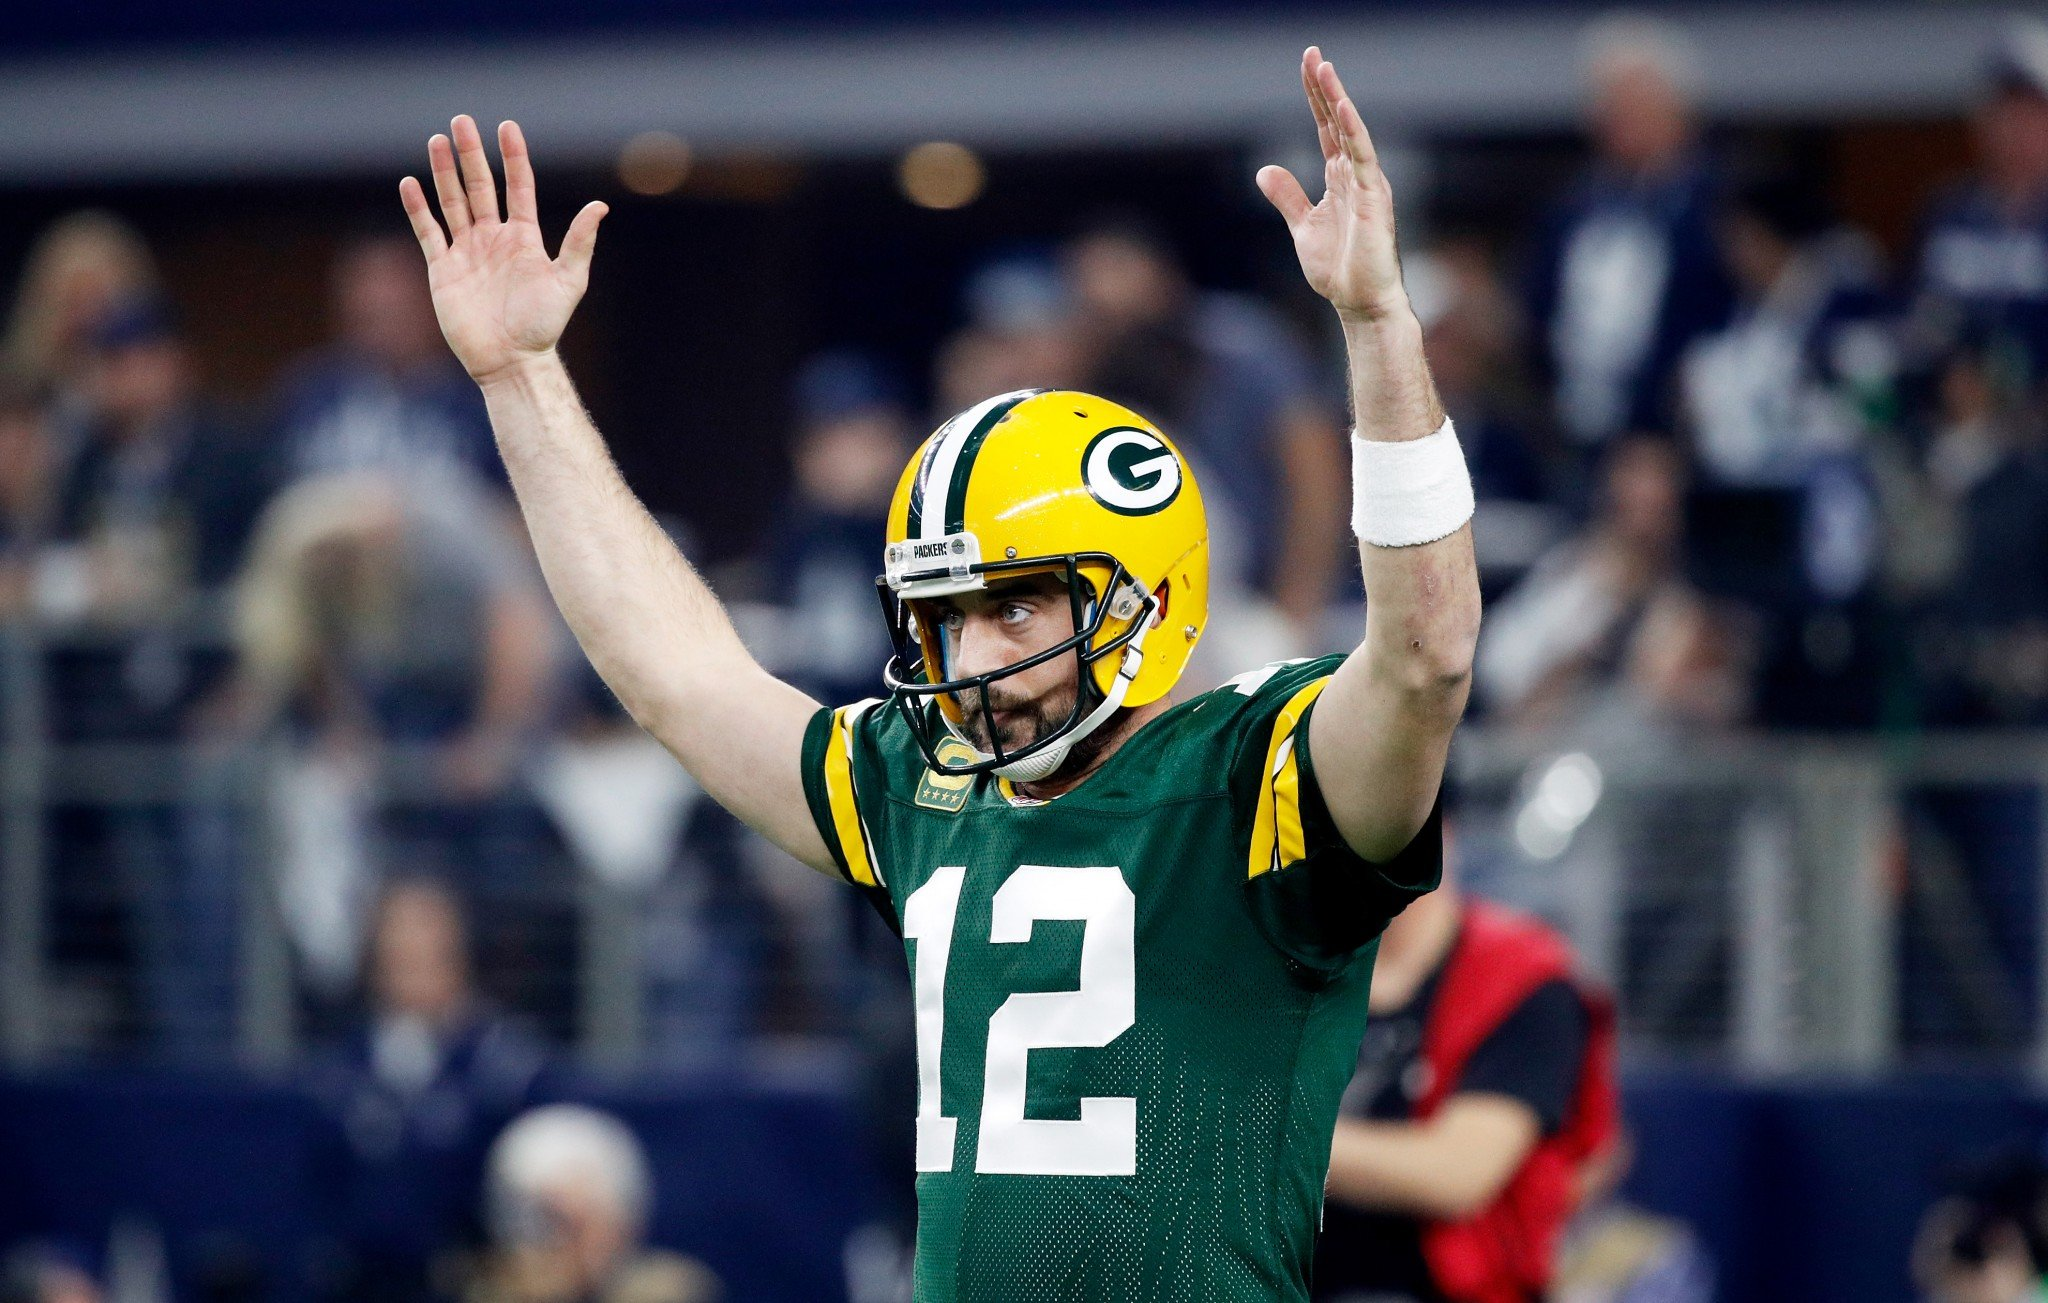 Aaron Rodgers #12 of the Green Bay Packers reacts after scoring a touchdown in the first half during the NFC Divisional Playoff Game against the Dalla...